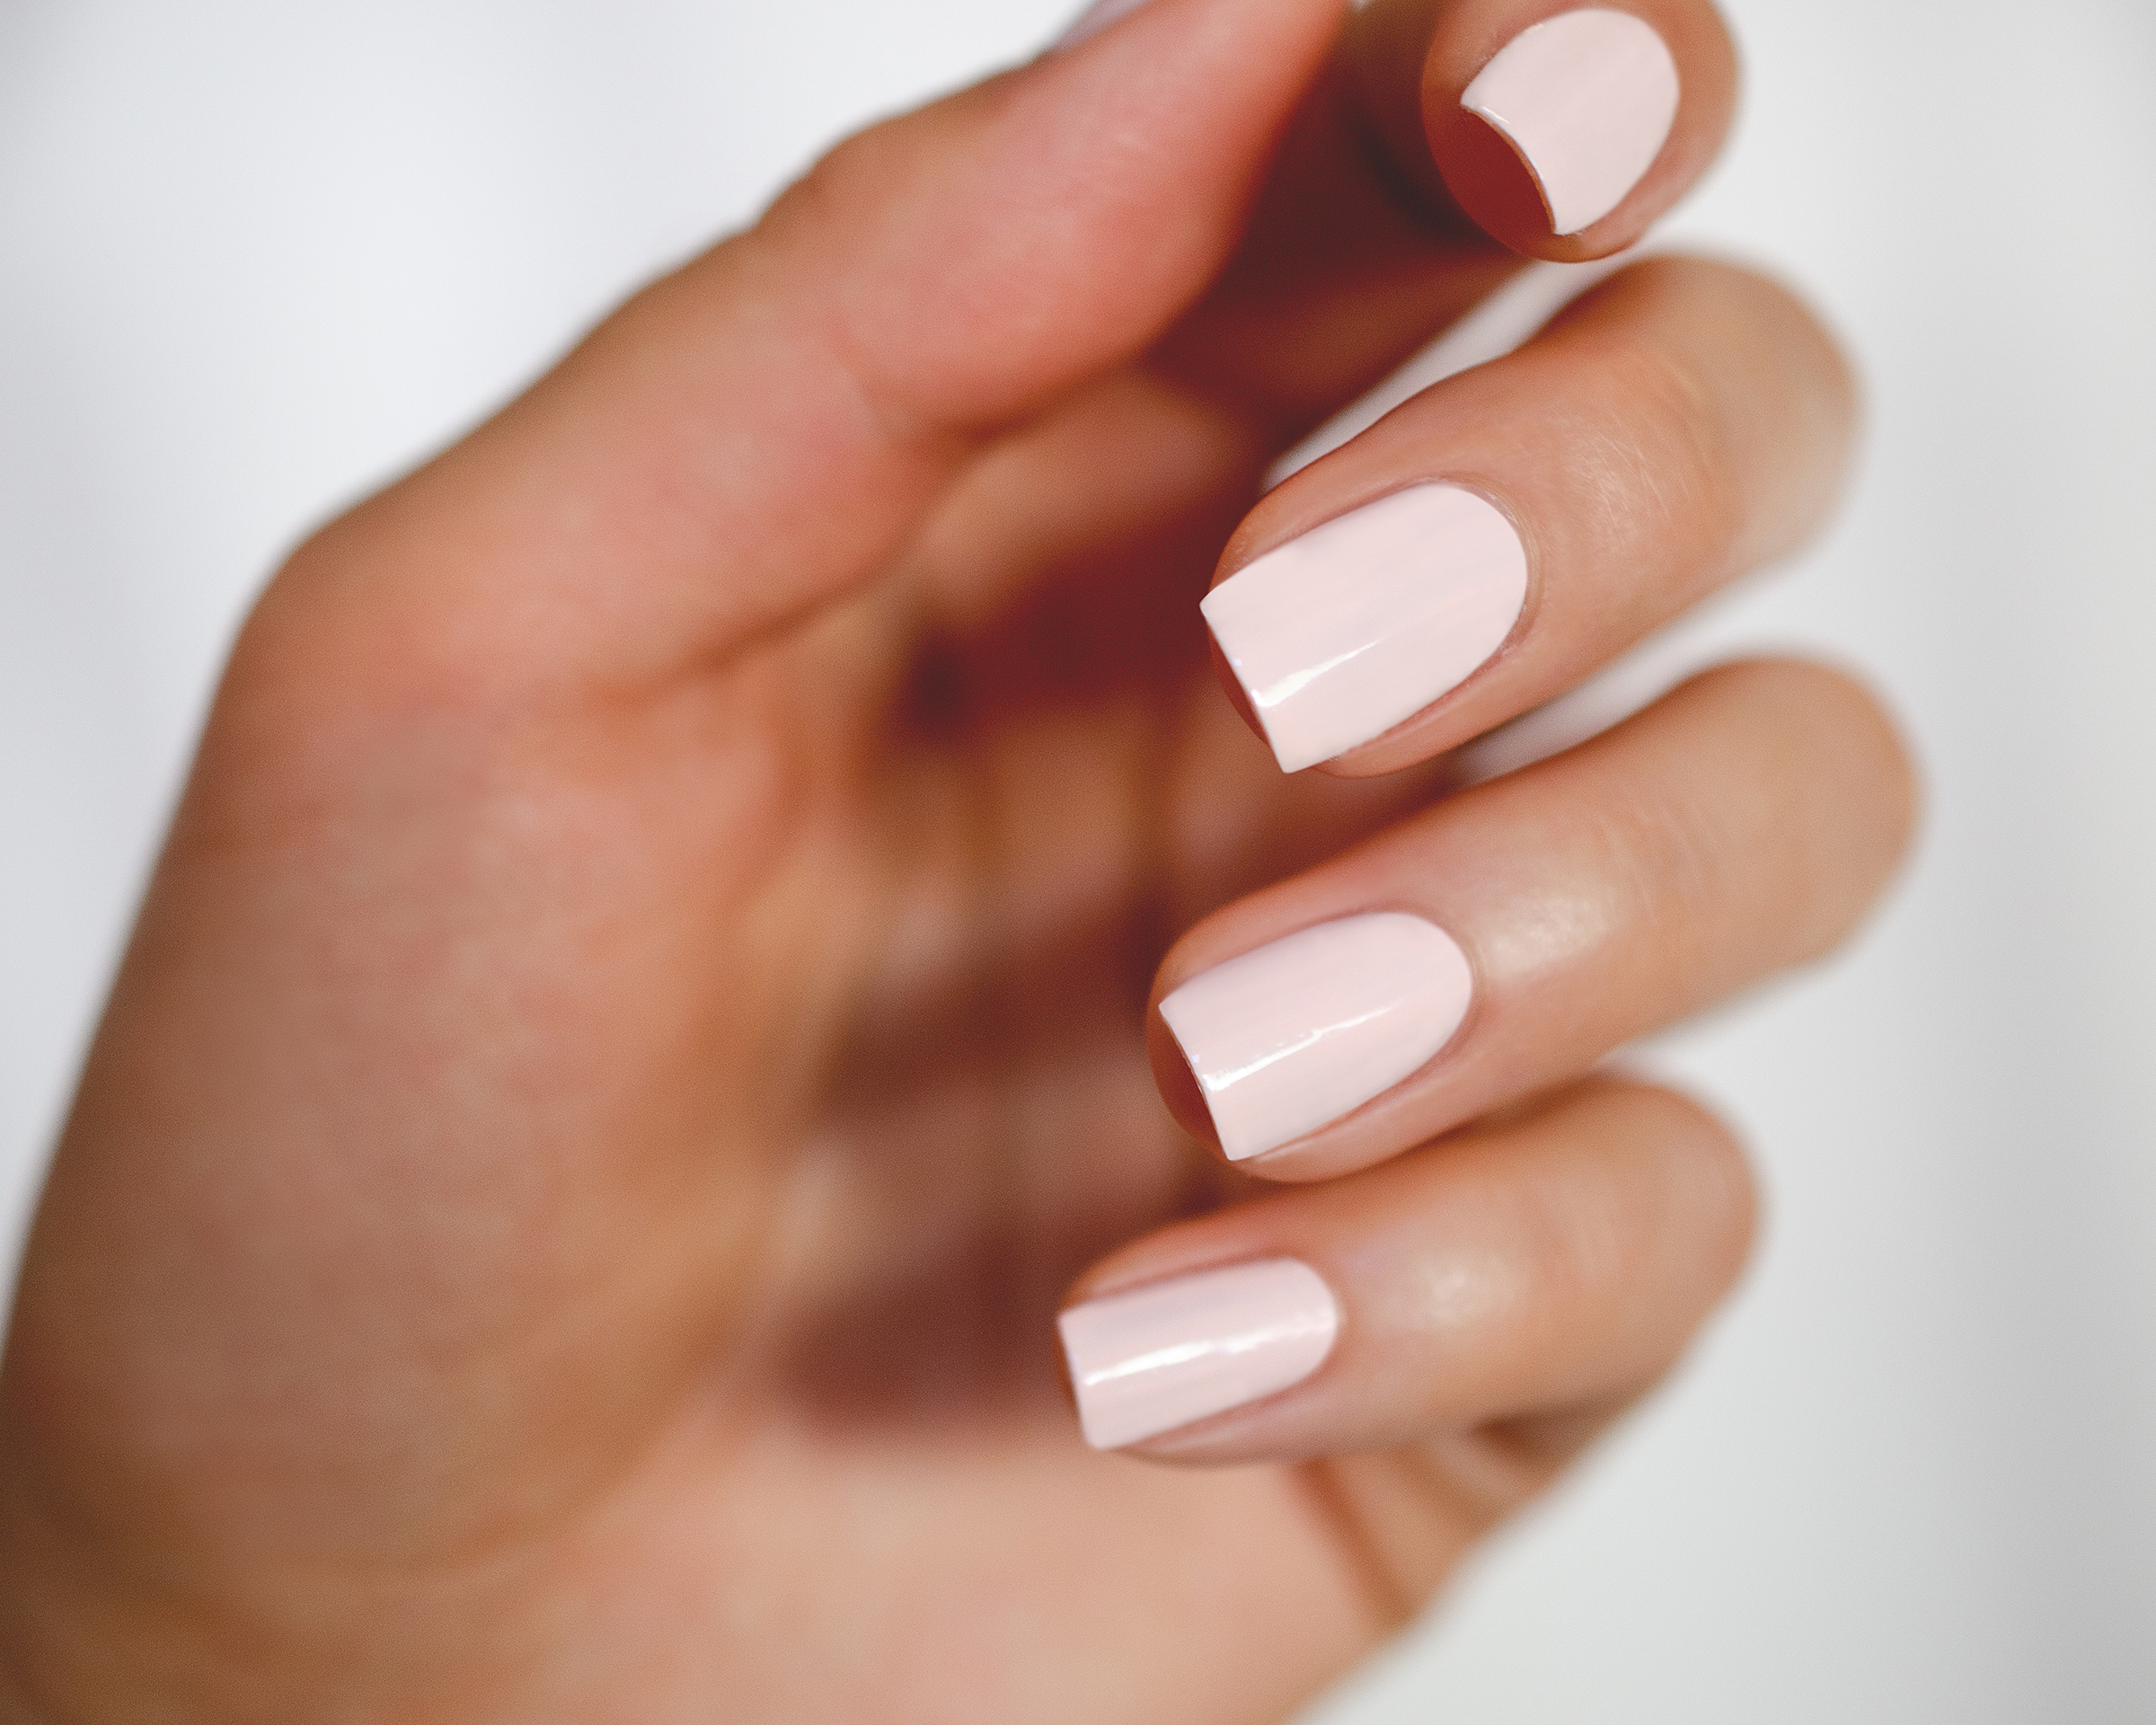 square nail shape with light pink nail polish by sienna